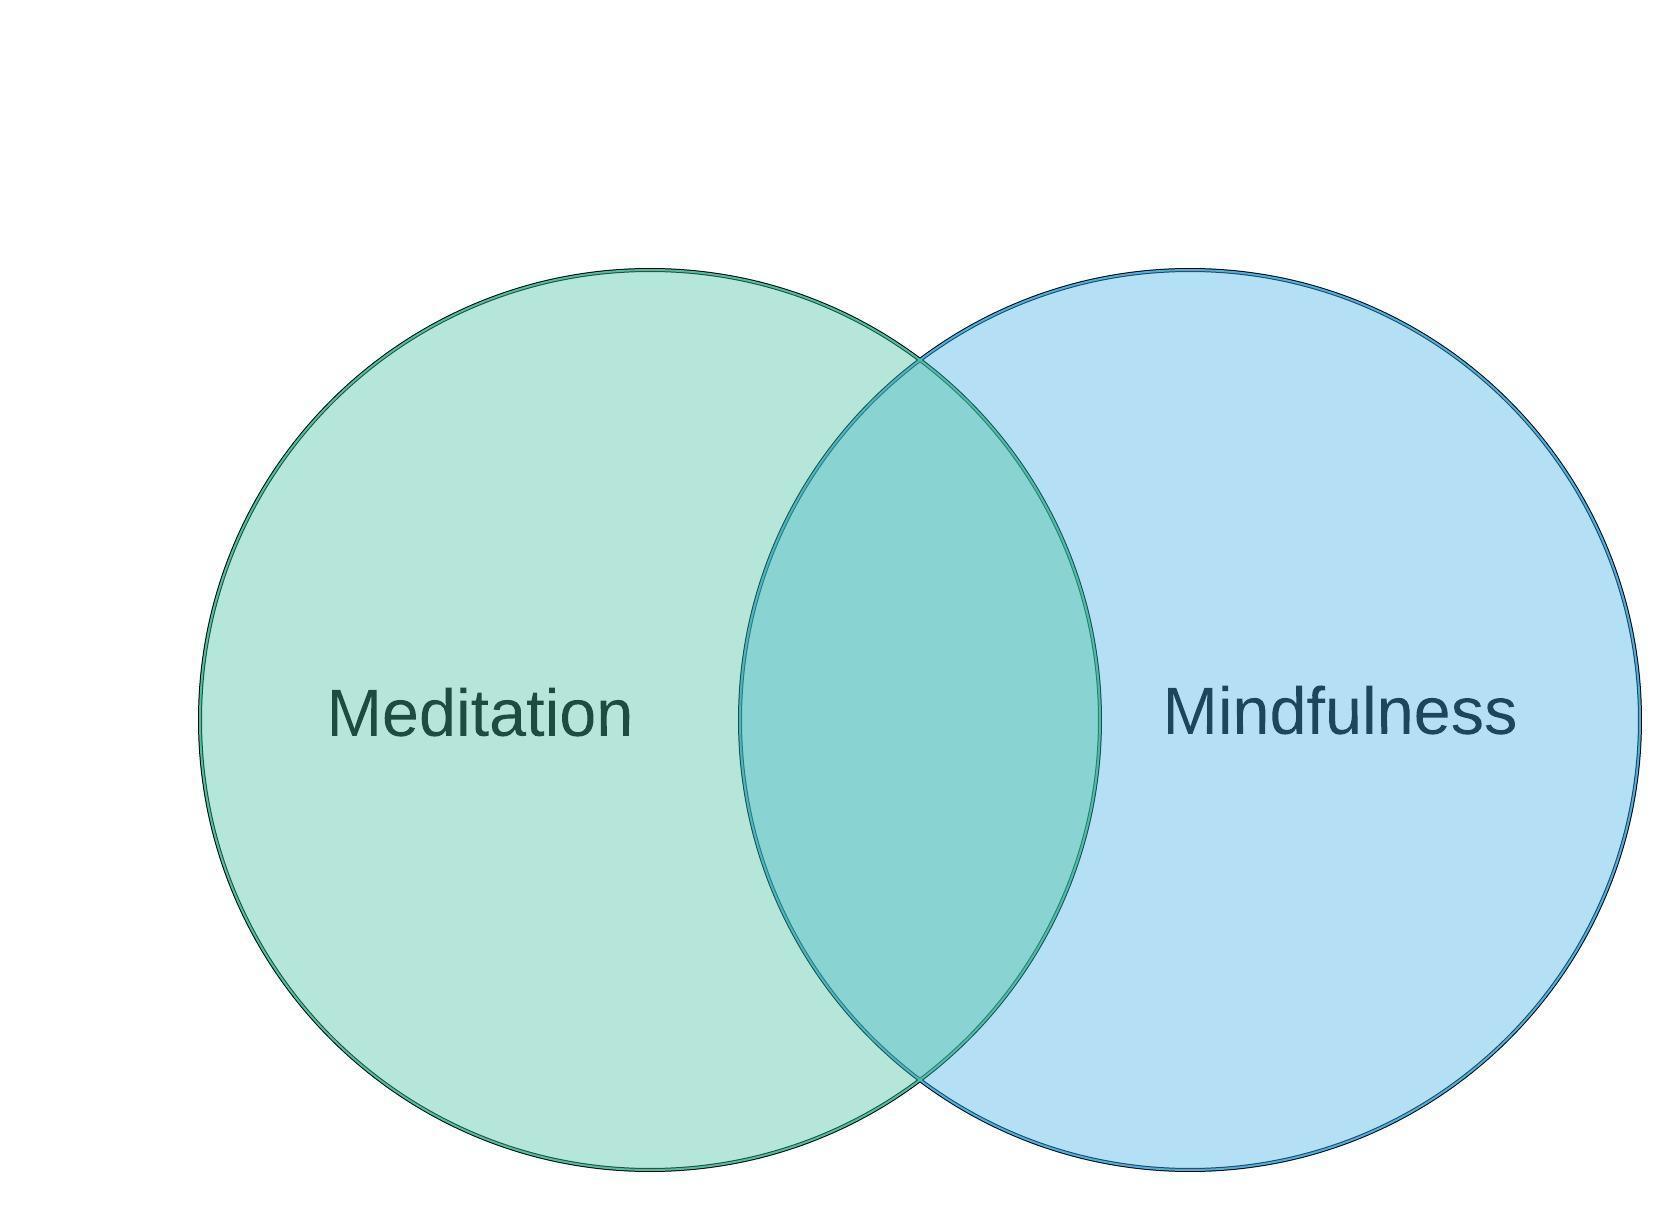 Venn diagram showing overlapping meditation and mindfulness